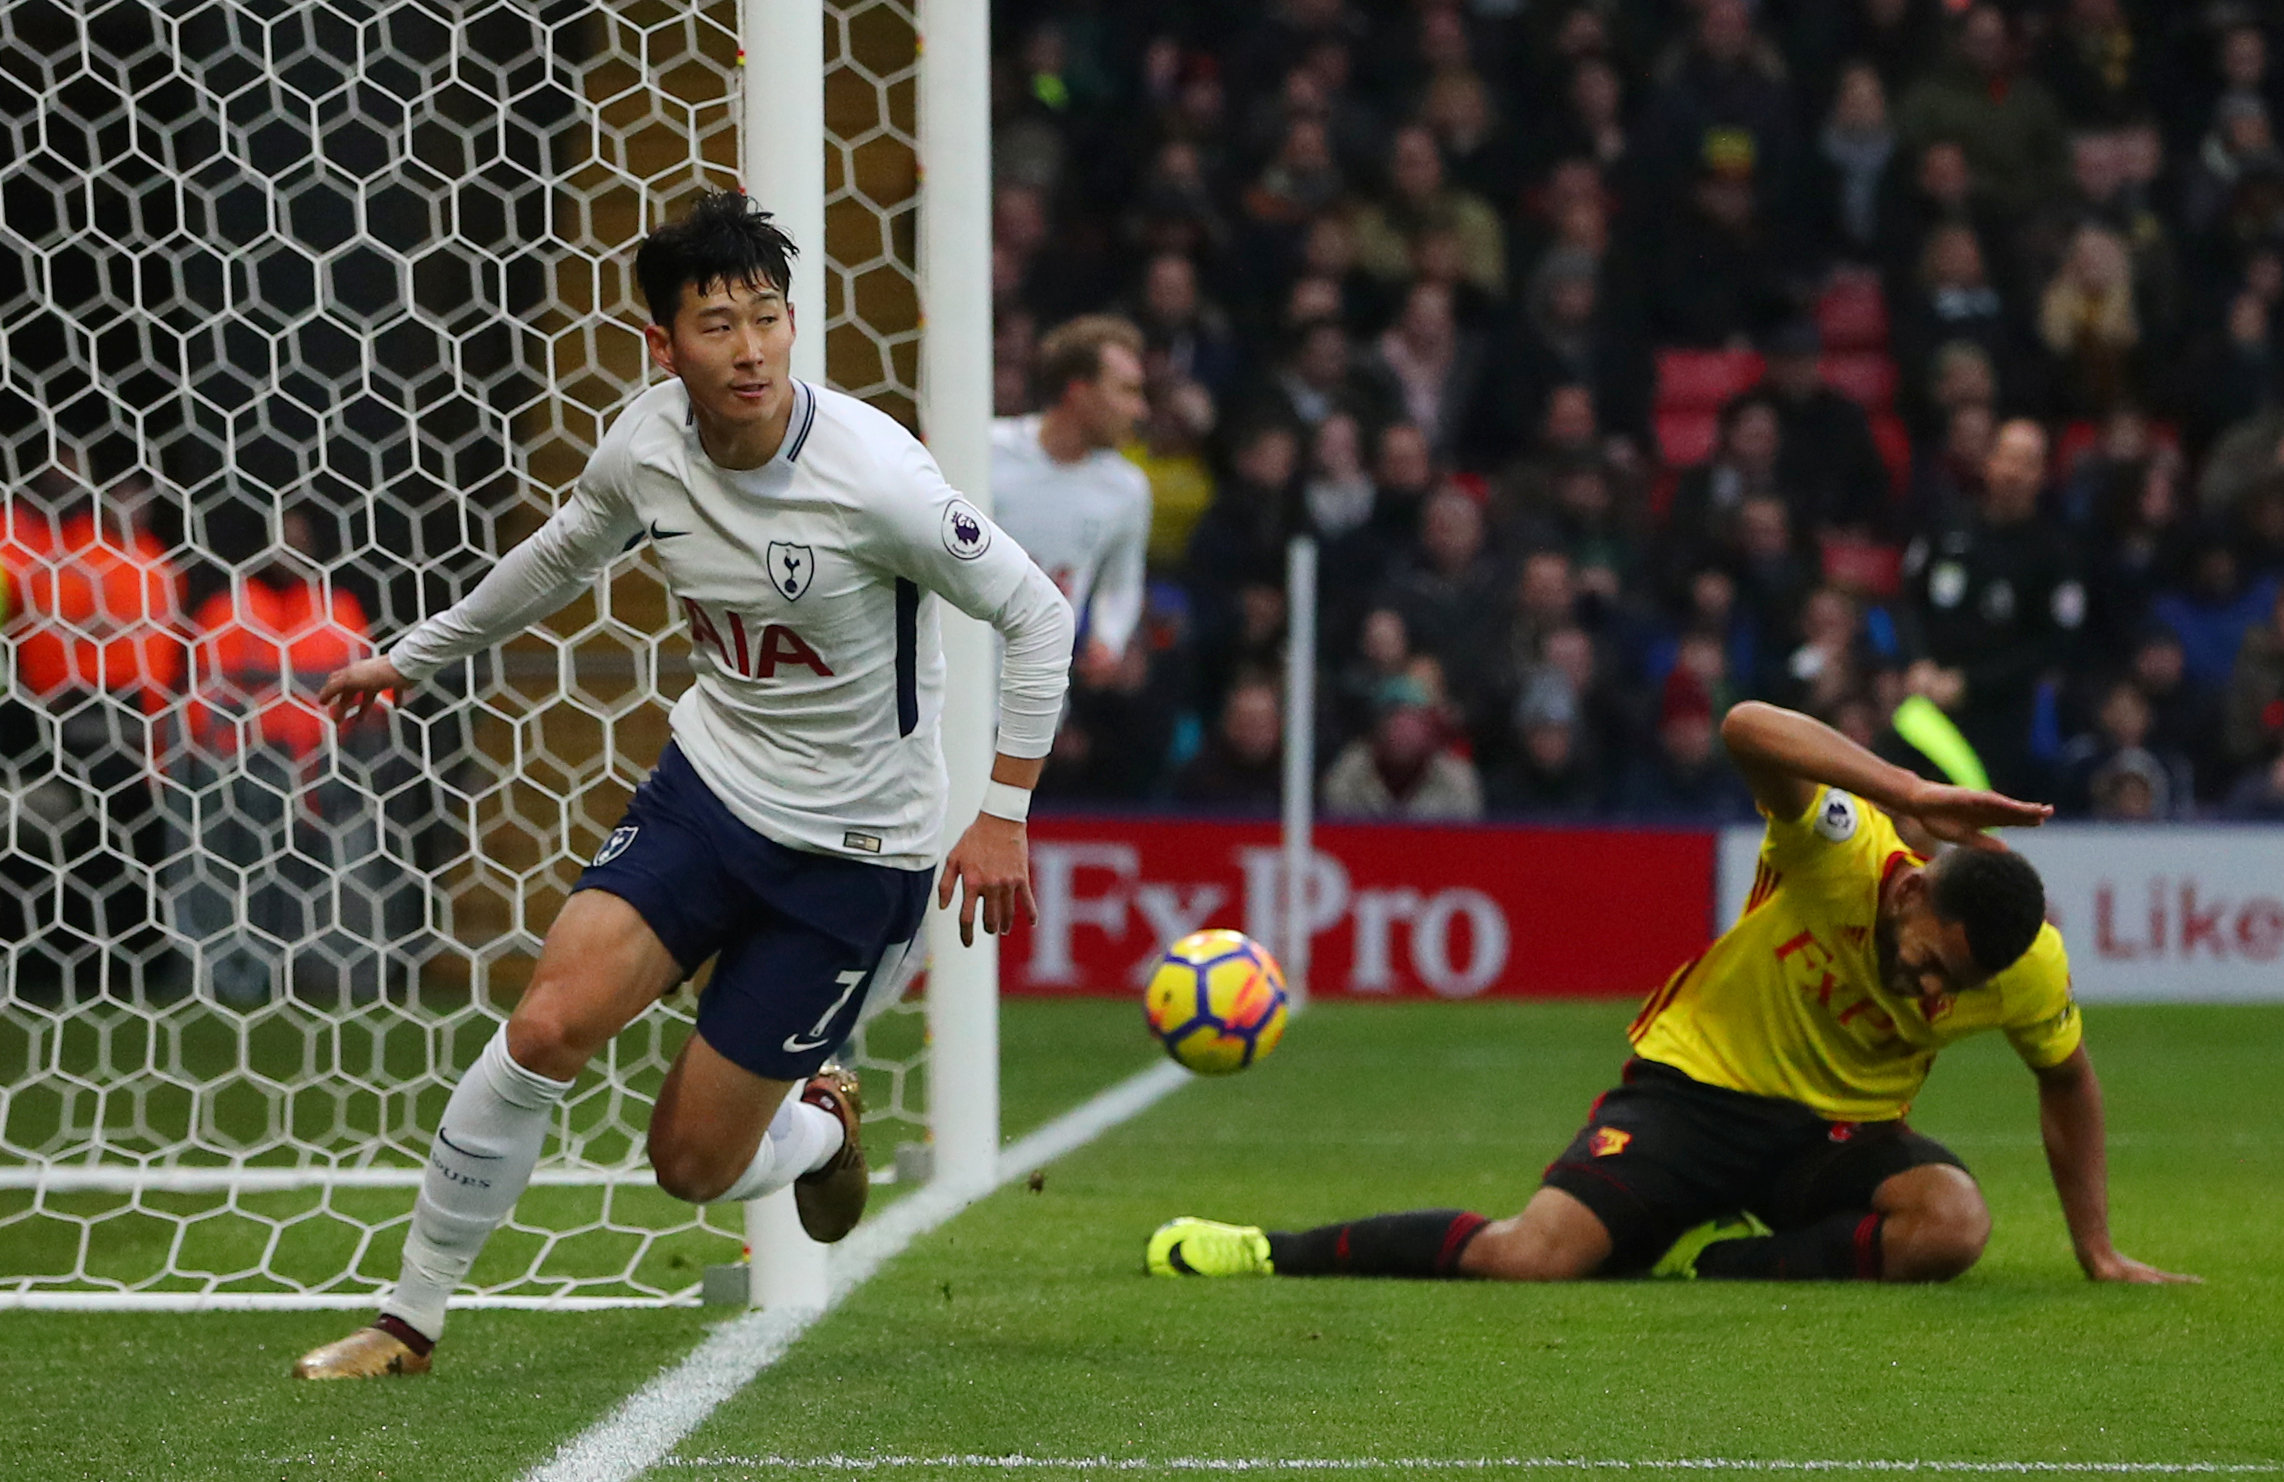 Son Heung-min turns in Tottenham's equaliser. Picture: Action Images